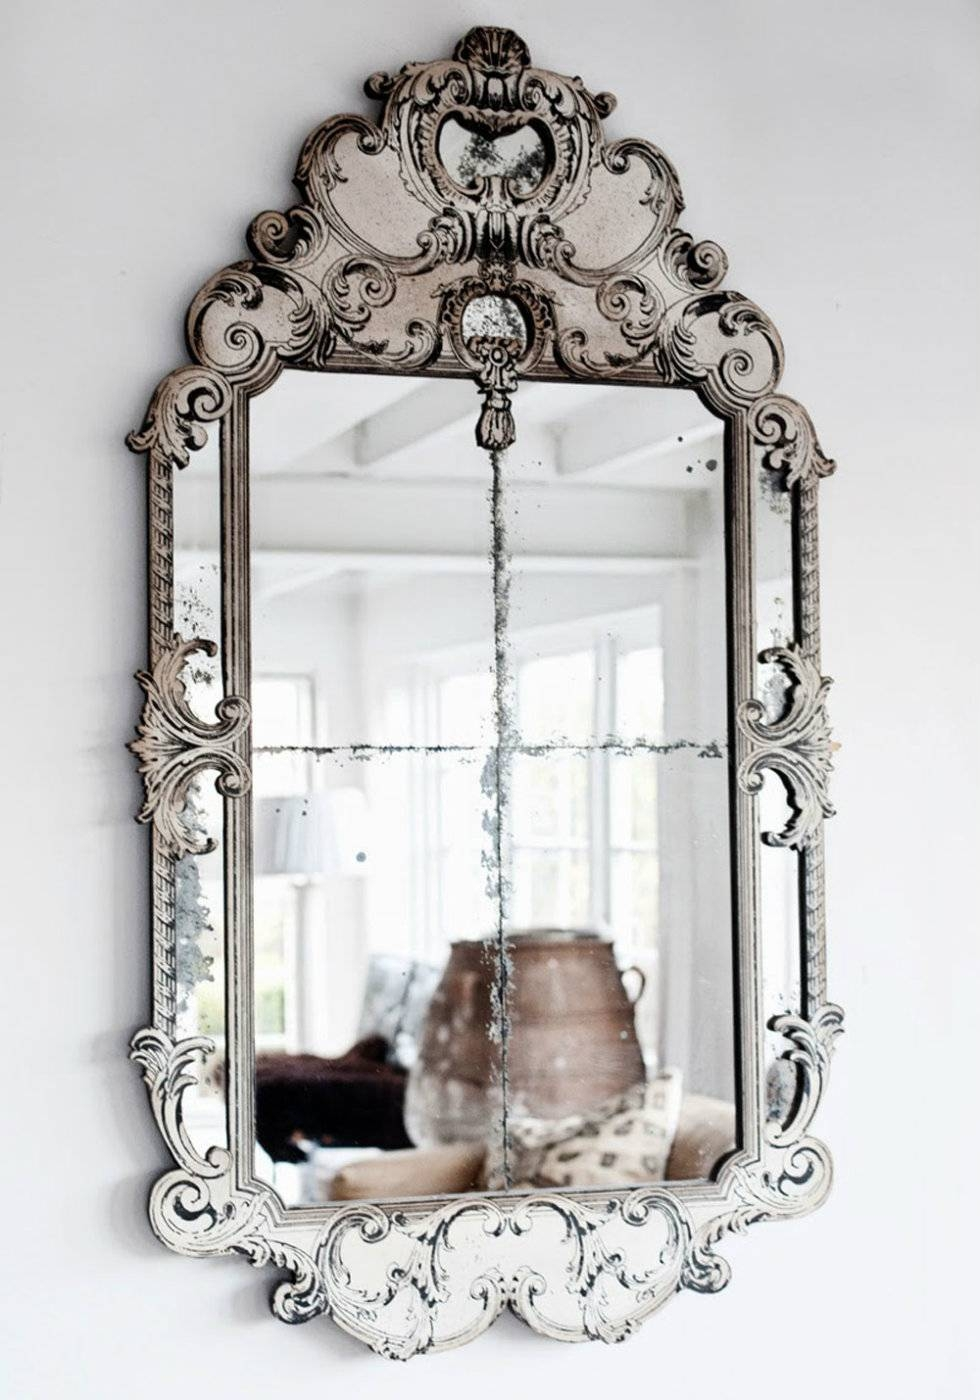 2015 Milan Design Week Trend To See: Luxurious Venetian Mirrors Intended For Cheap Venetian Mirrors (View 14 of 15)